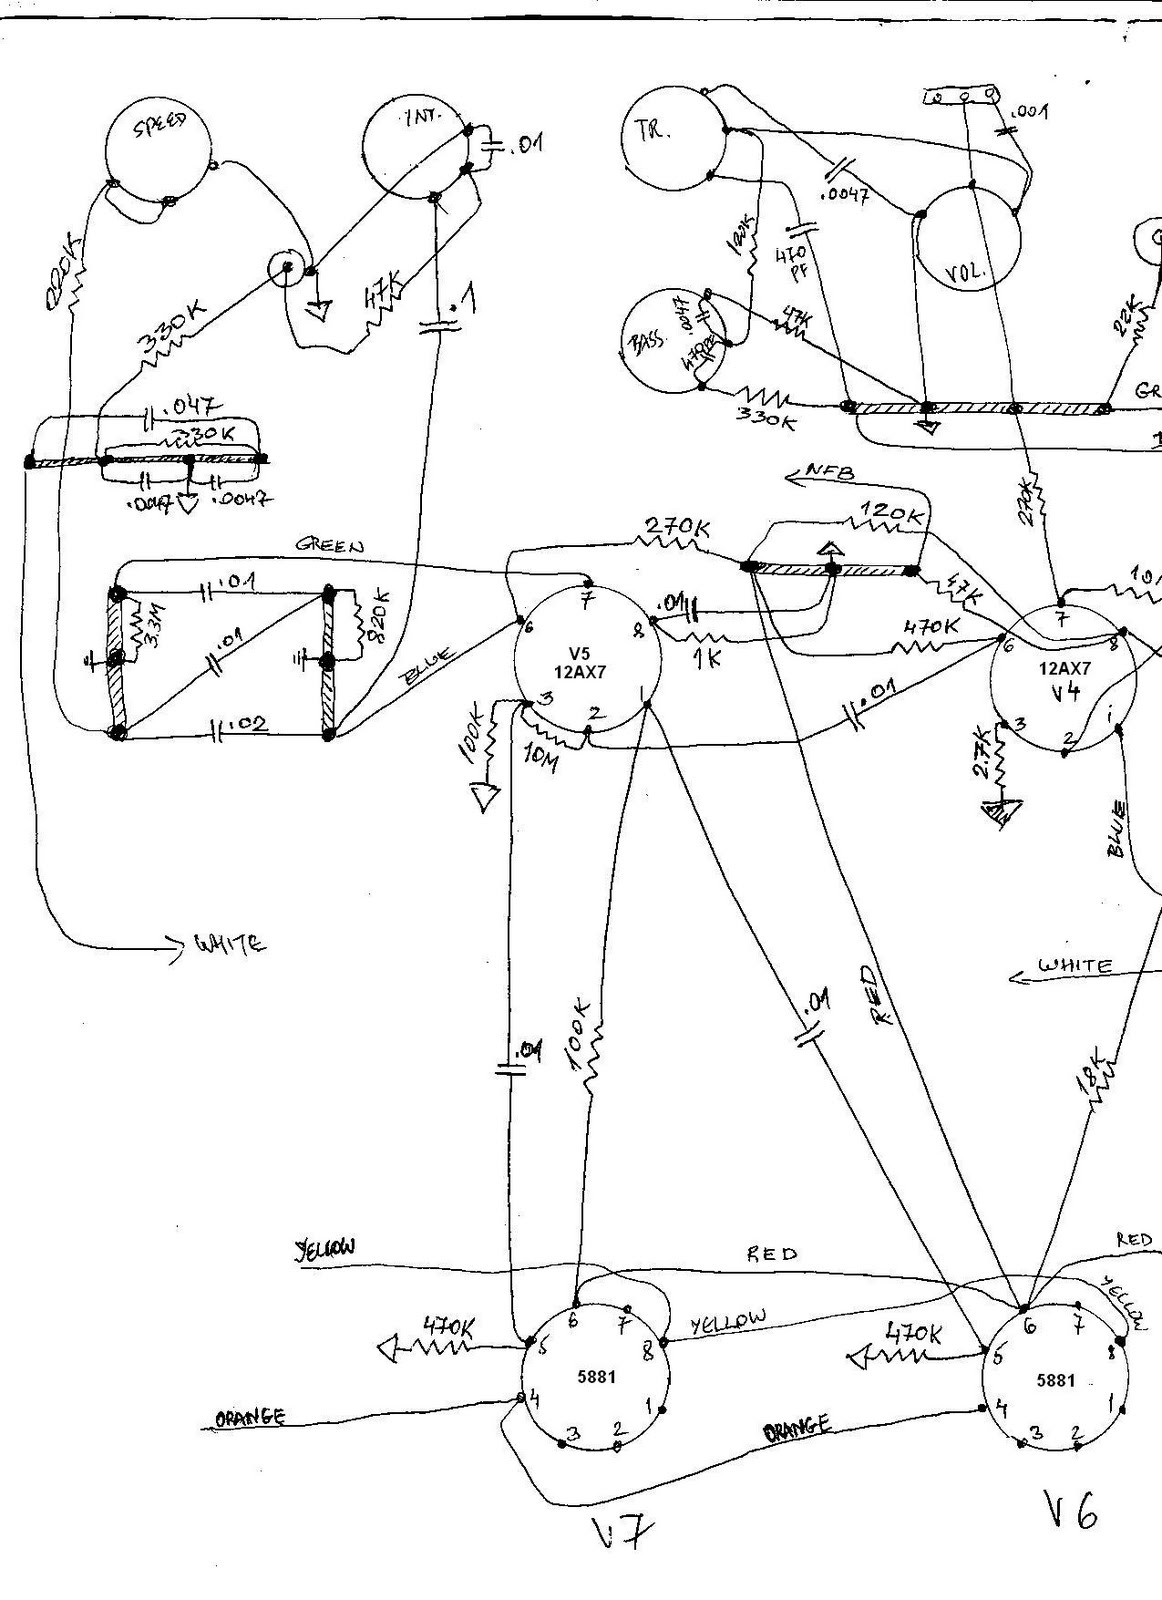 E8 400mm Gate Openerwiring Diagram Soca St Mm Opener 47 Tel Tach Wiring Magneto Steering Wheel